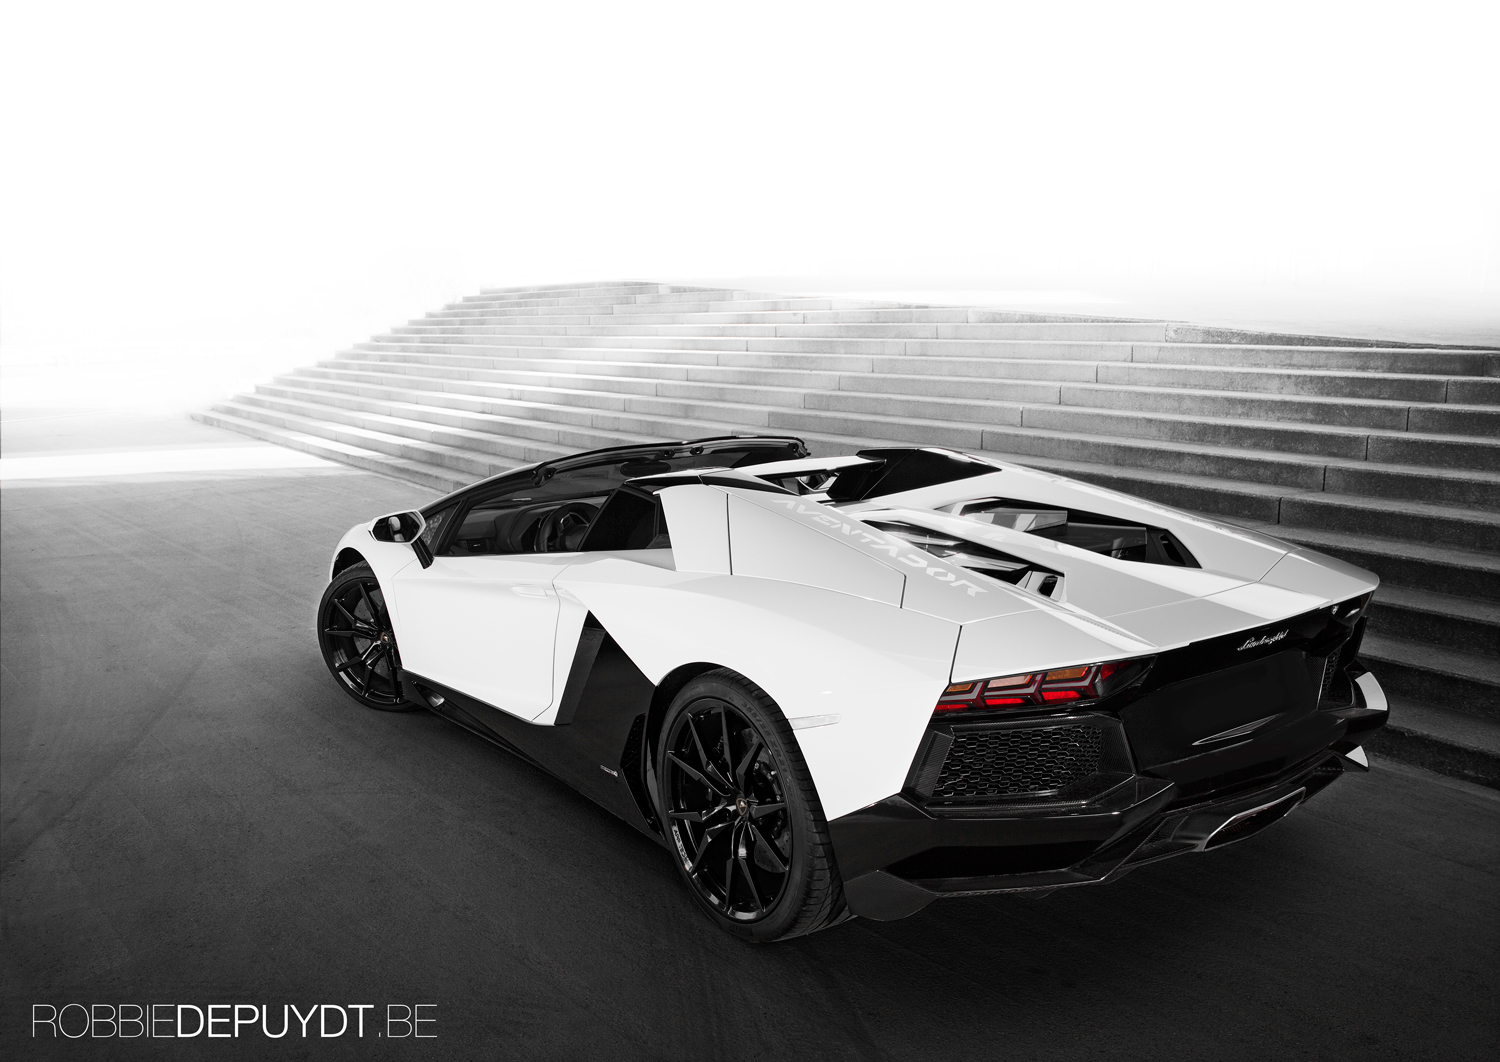 photoshoot lamborghini aventador lp700 4 roadster. Black Bedroom Furniture Sets. Home Design Ideas